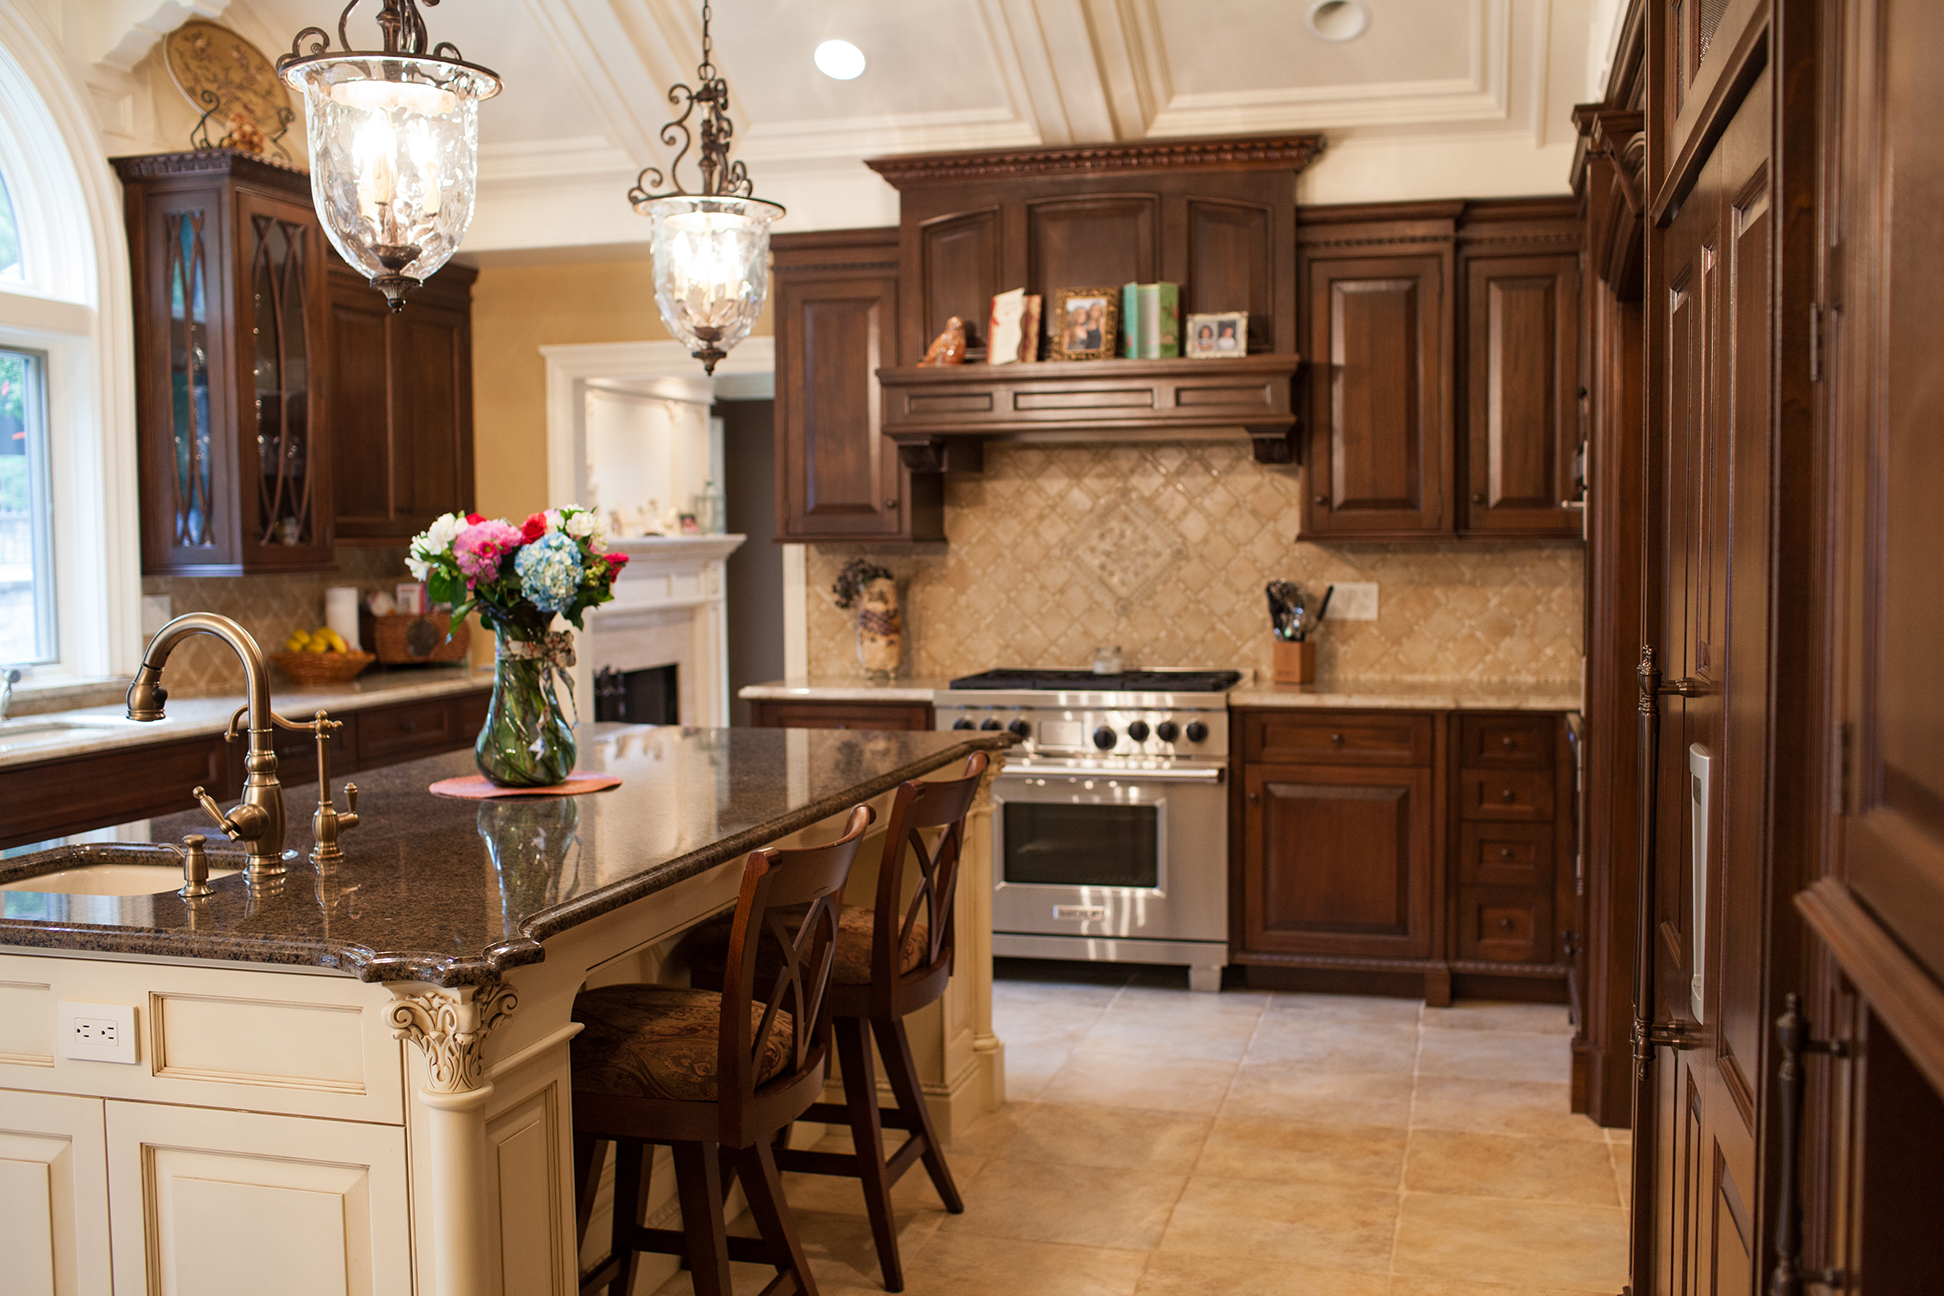 Gourmet Kitchen Remodel Morris Nj: Lyons McConnell Morristown New Jersey Architect